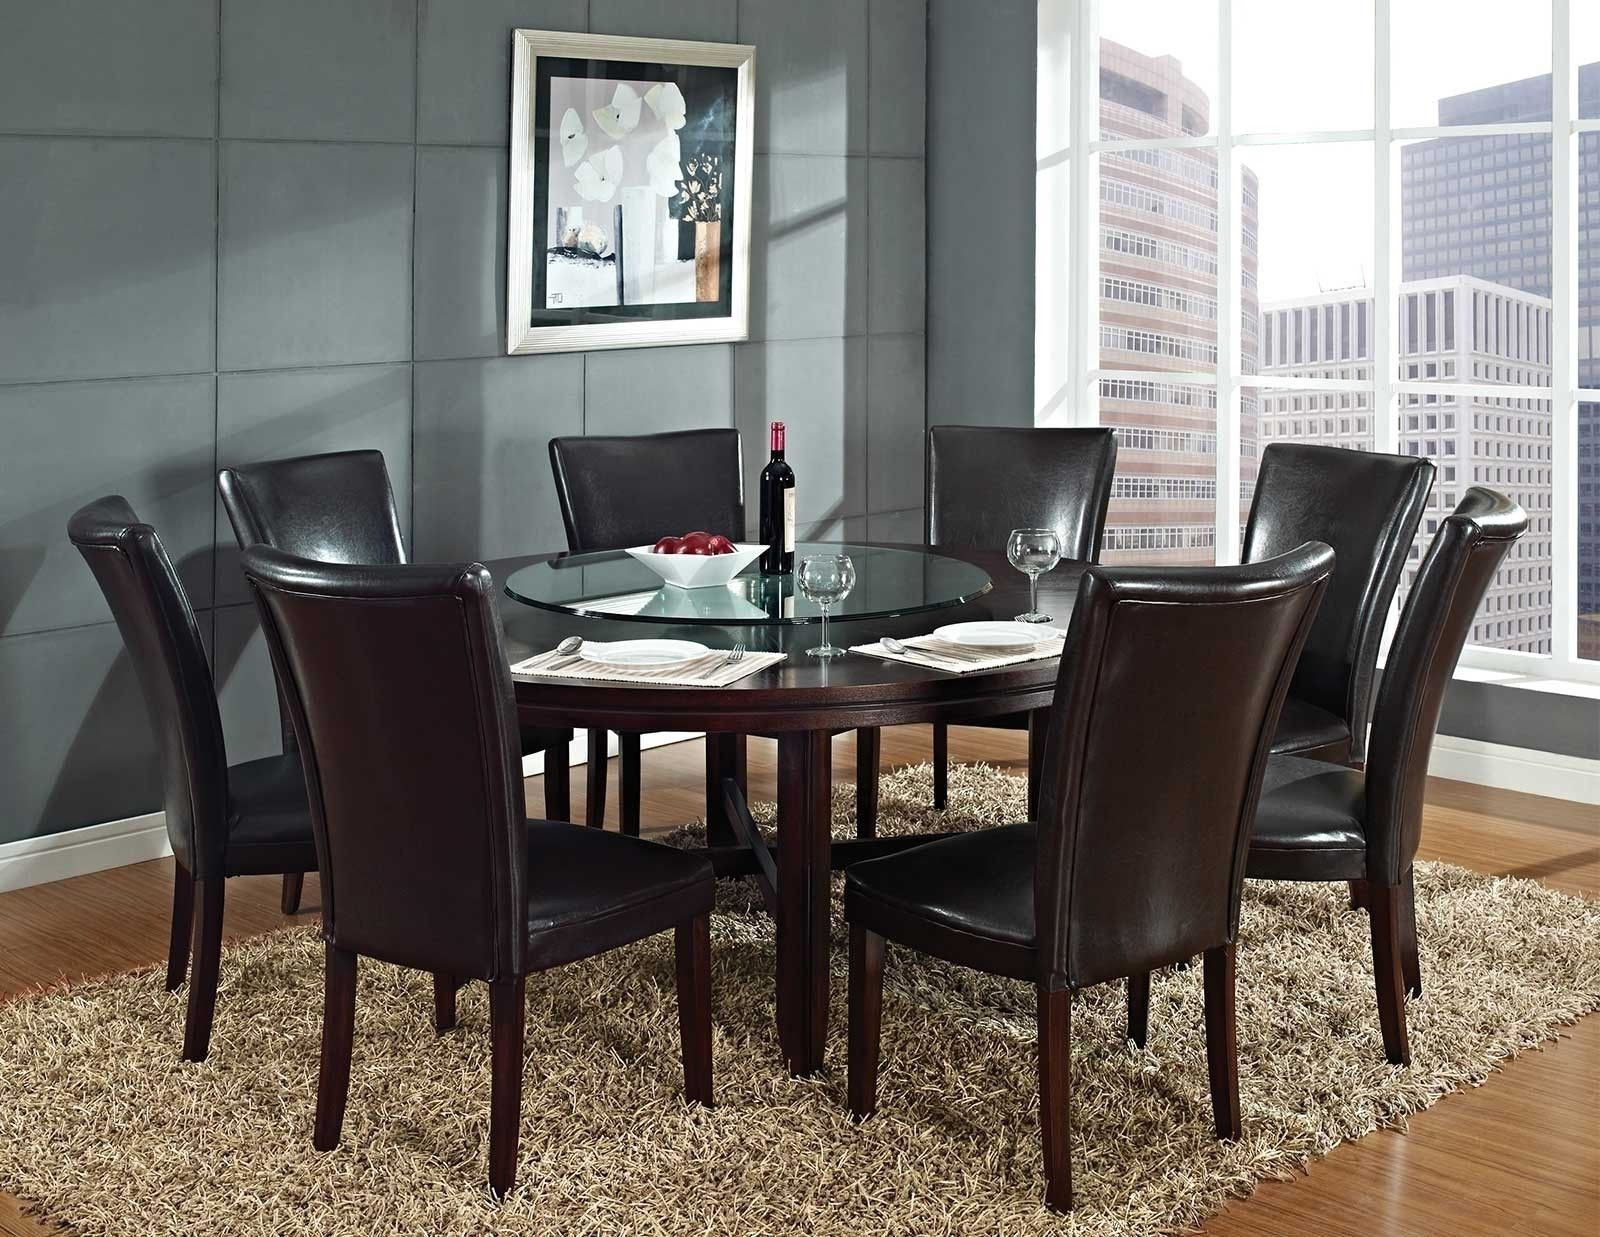 Round Dining Tables Seat 8  Httpargharts  Pinterest Custom Round Dining Room Table Seats 8 Design Ideas